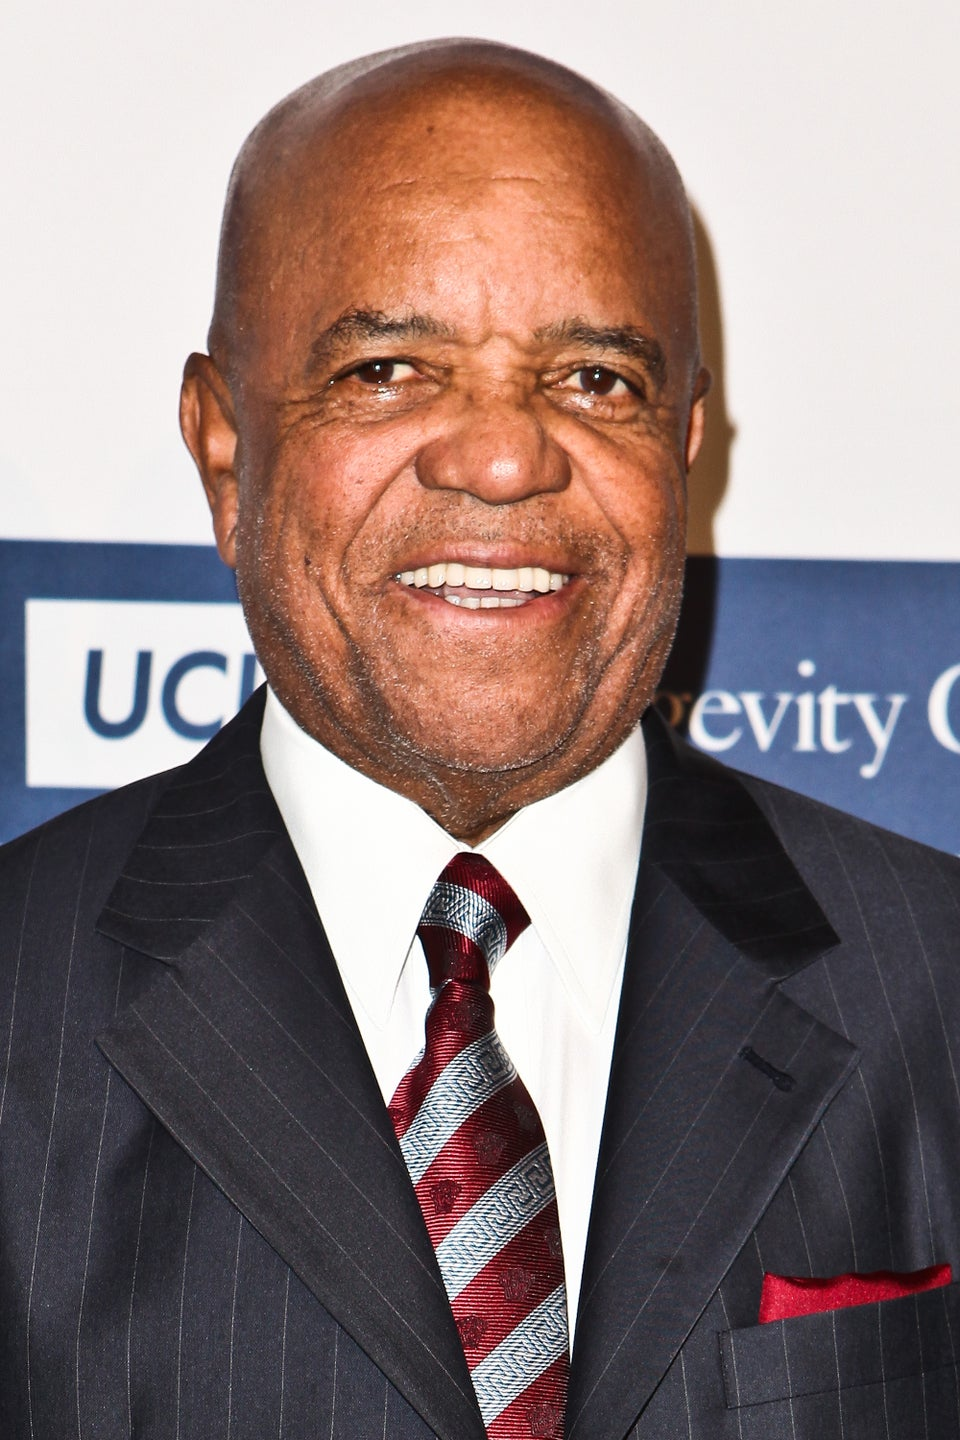 Berry Gordy to Receive Songwriters Hall of Fame Award